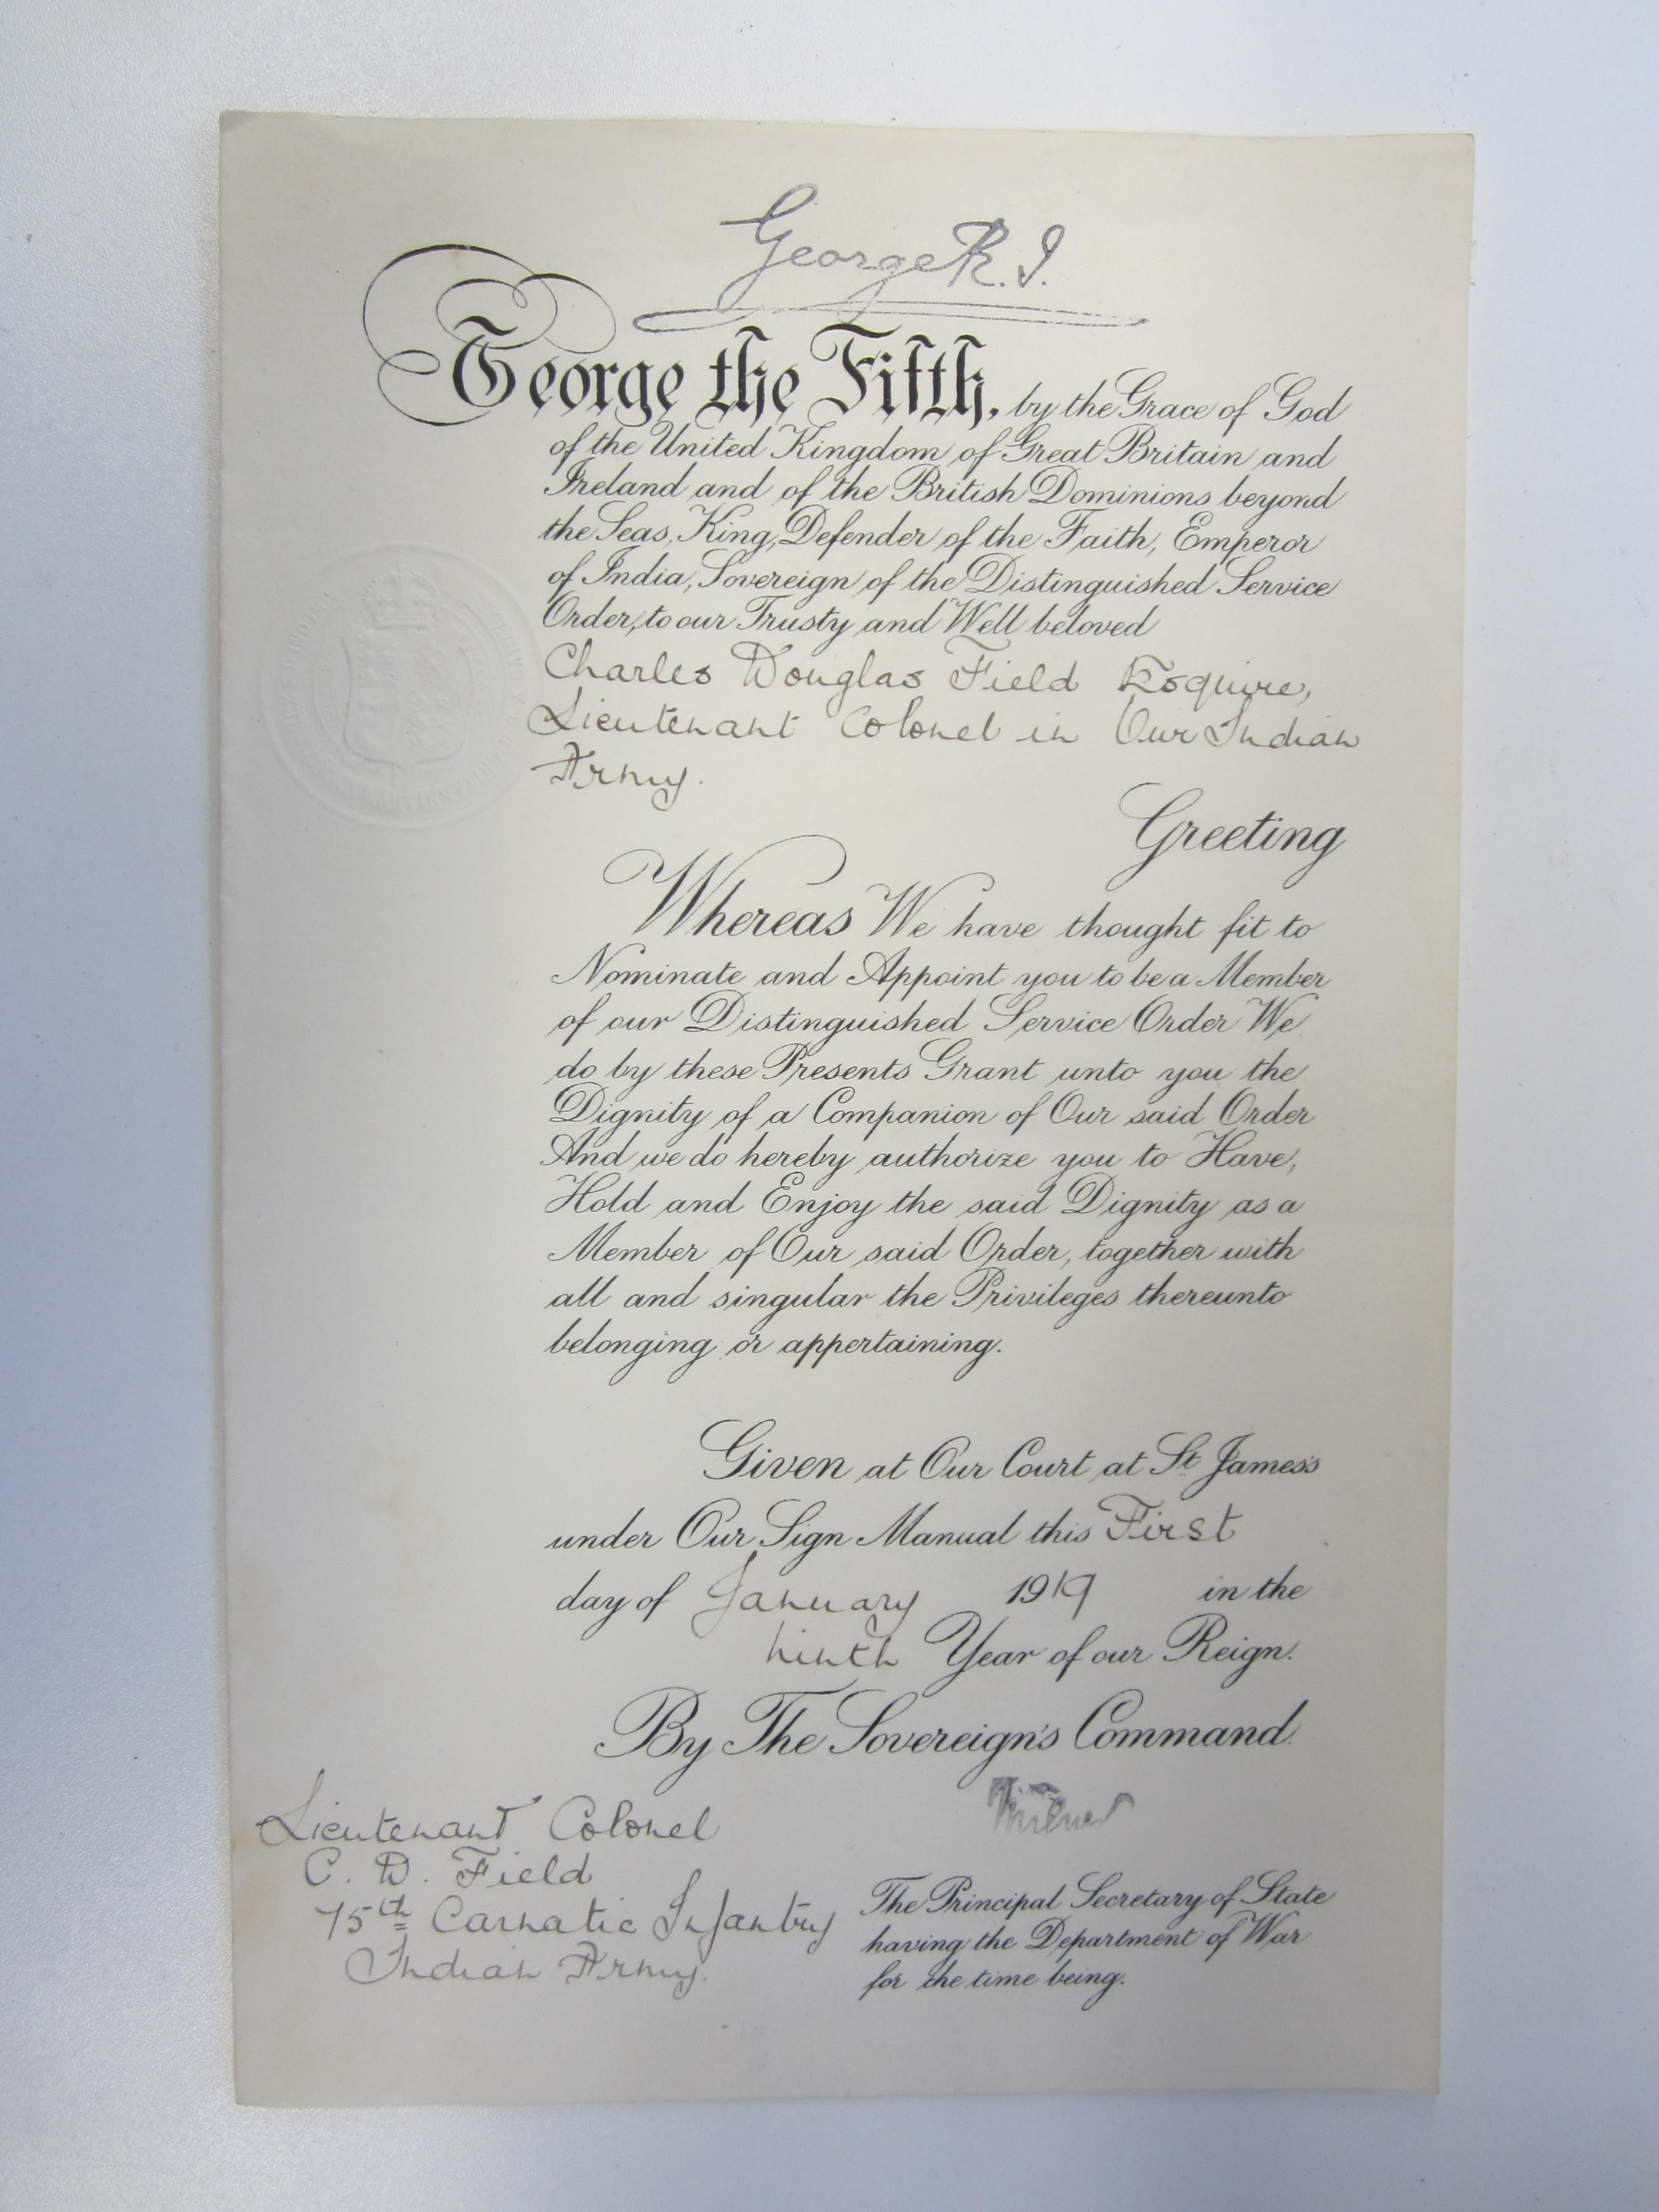 A Warrant for the award of the Distinguished Service Order to Lieutenant Colonel C.D.Field, 75th ...